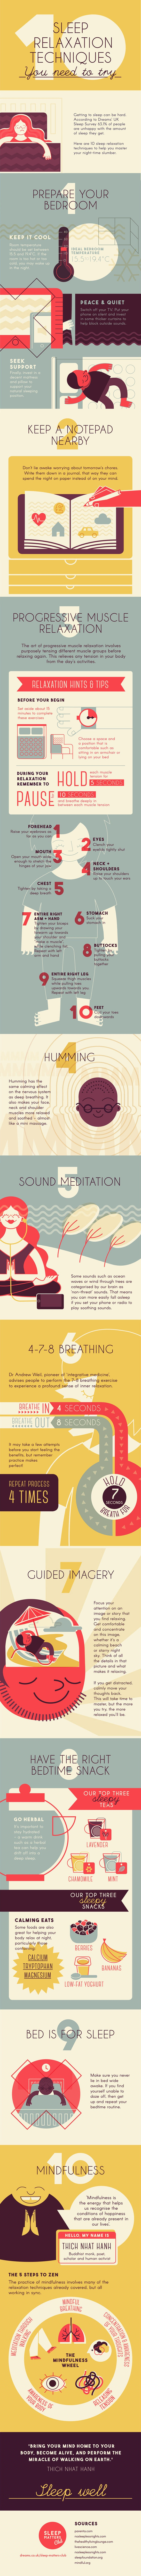 """Because """"Just relax!"""" isn't as helpful as a bunch of actual tips for how to do that. And btw, here are some more infographics that might help you make de-stressing a practice."""